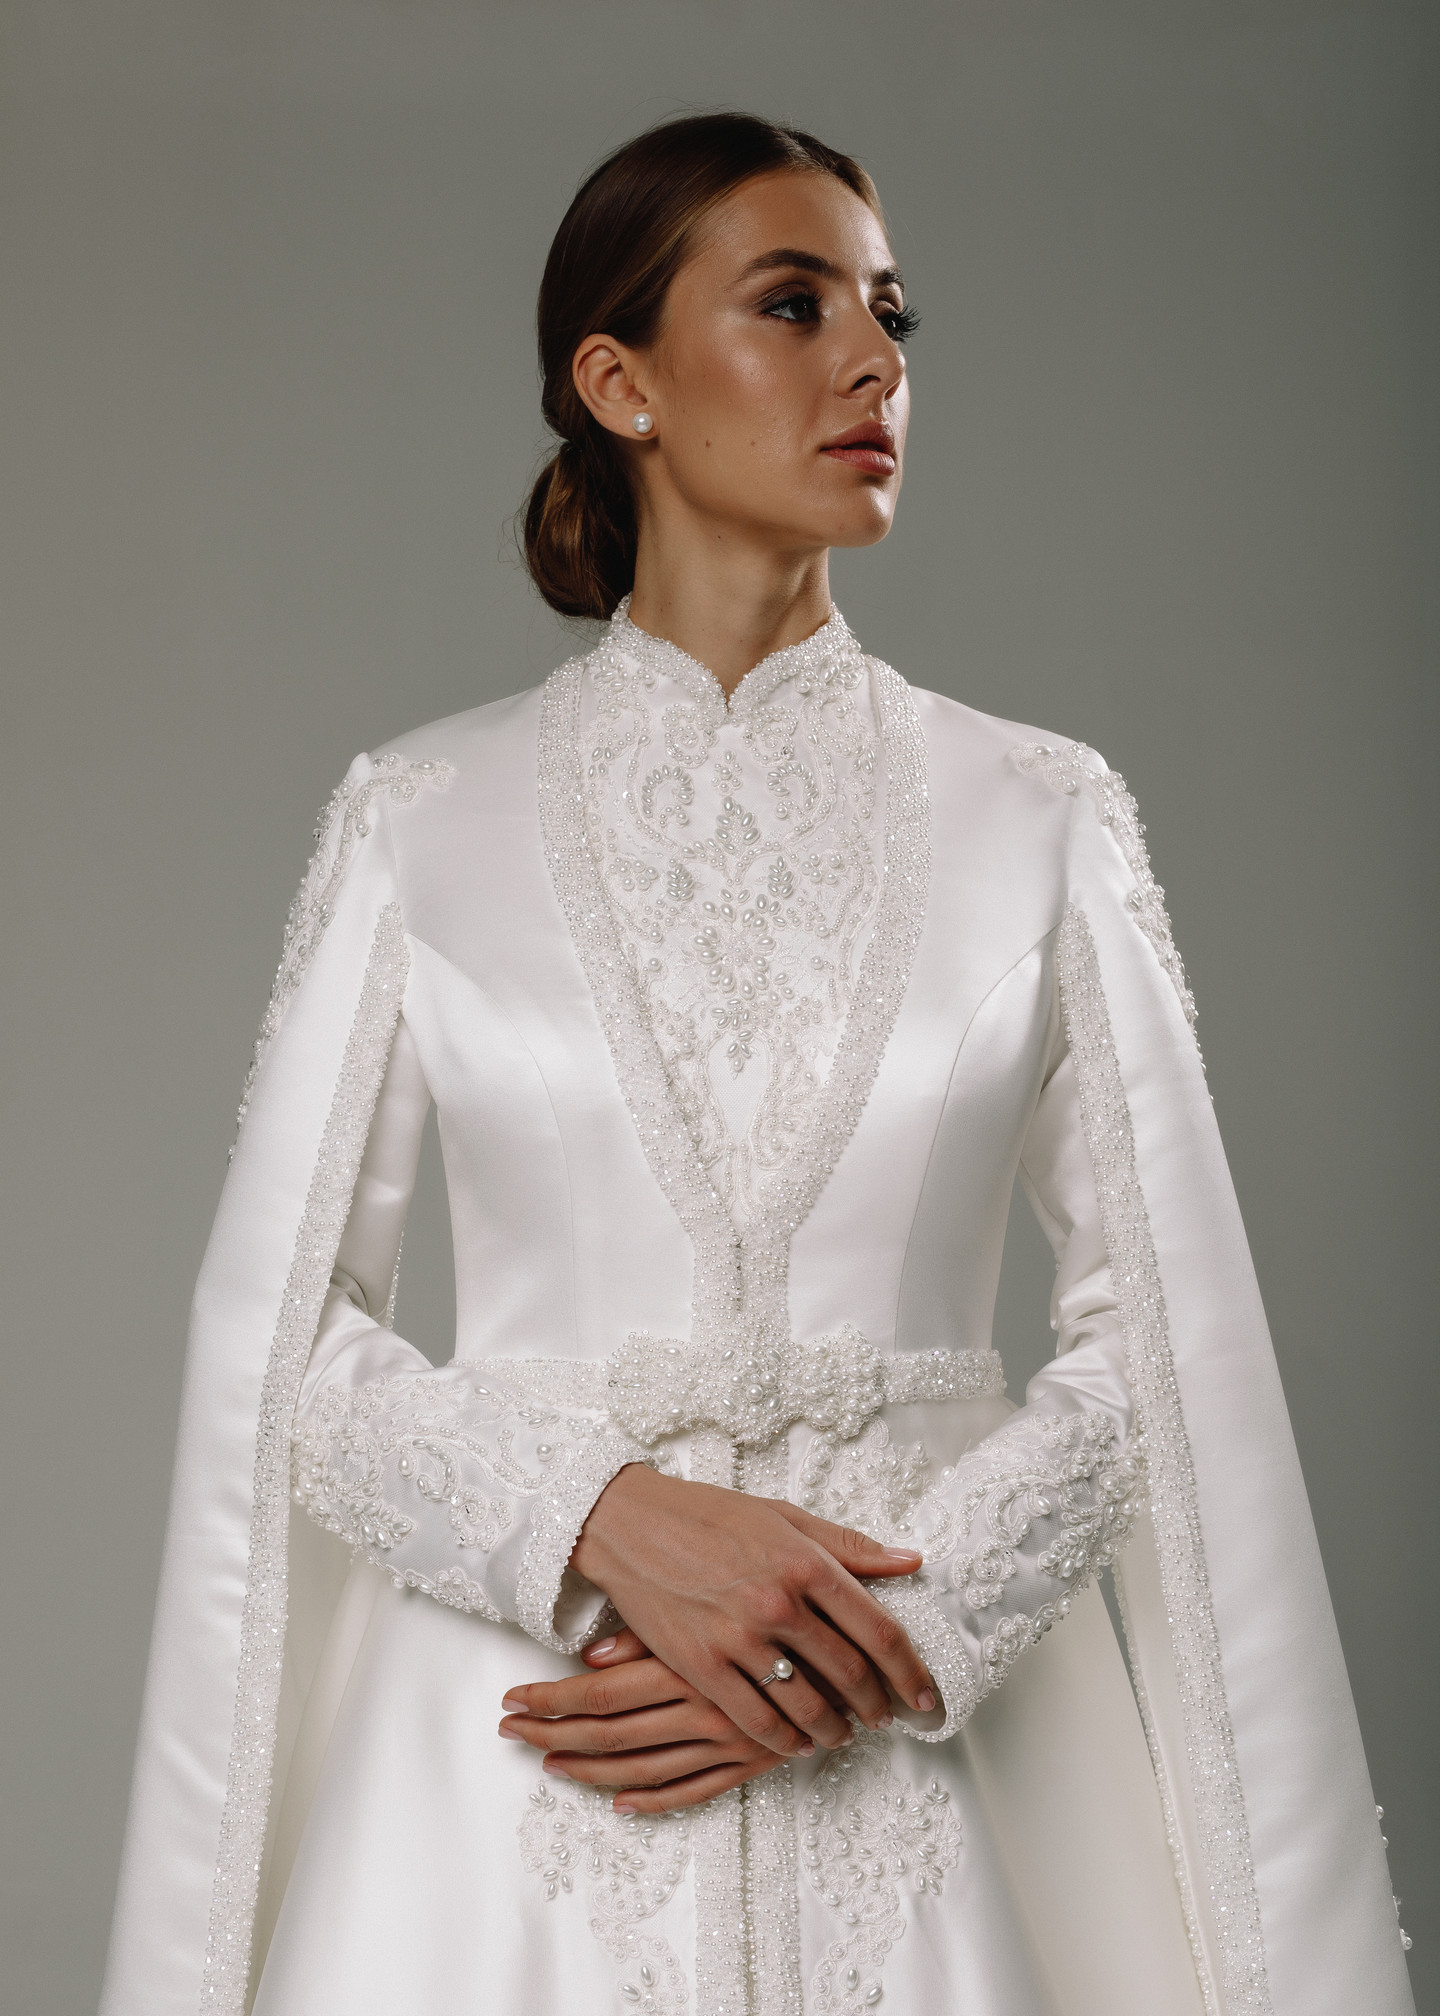 Roxana gown, 2020, couture, dress, bridal, off-white, lace, Roxana, embroidery, A-line, sleeves, train, satin